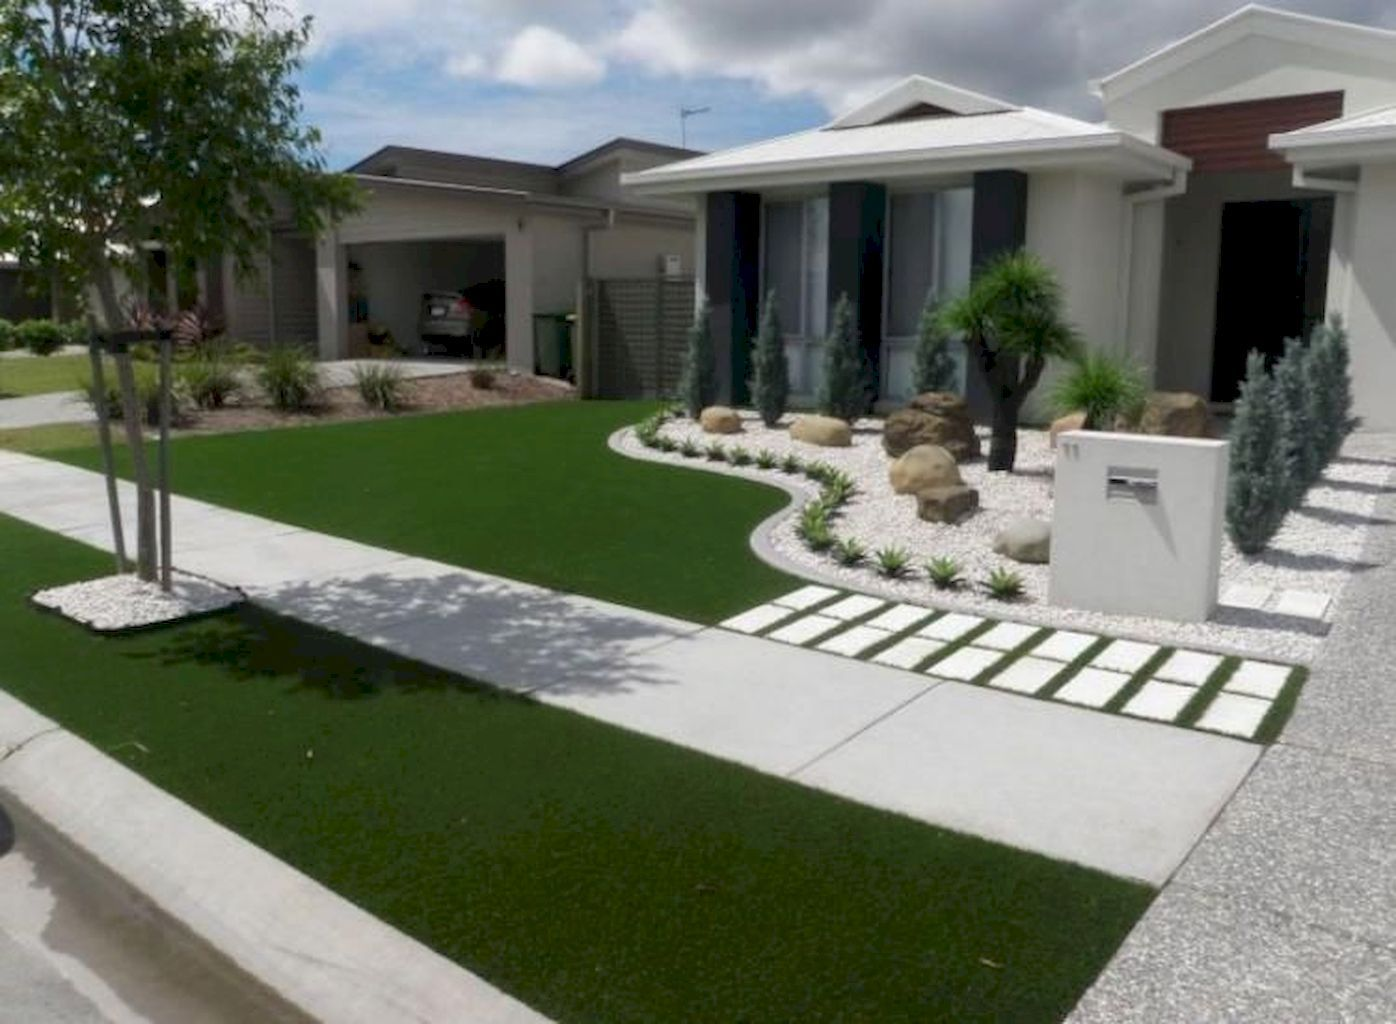 12 Cool Modern Front Yard Design Ideas You Have To See Freshouz Com Minimalist Garden Small Front Yard Landscaping Front Yard Garden Design